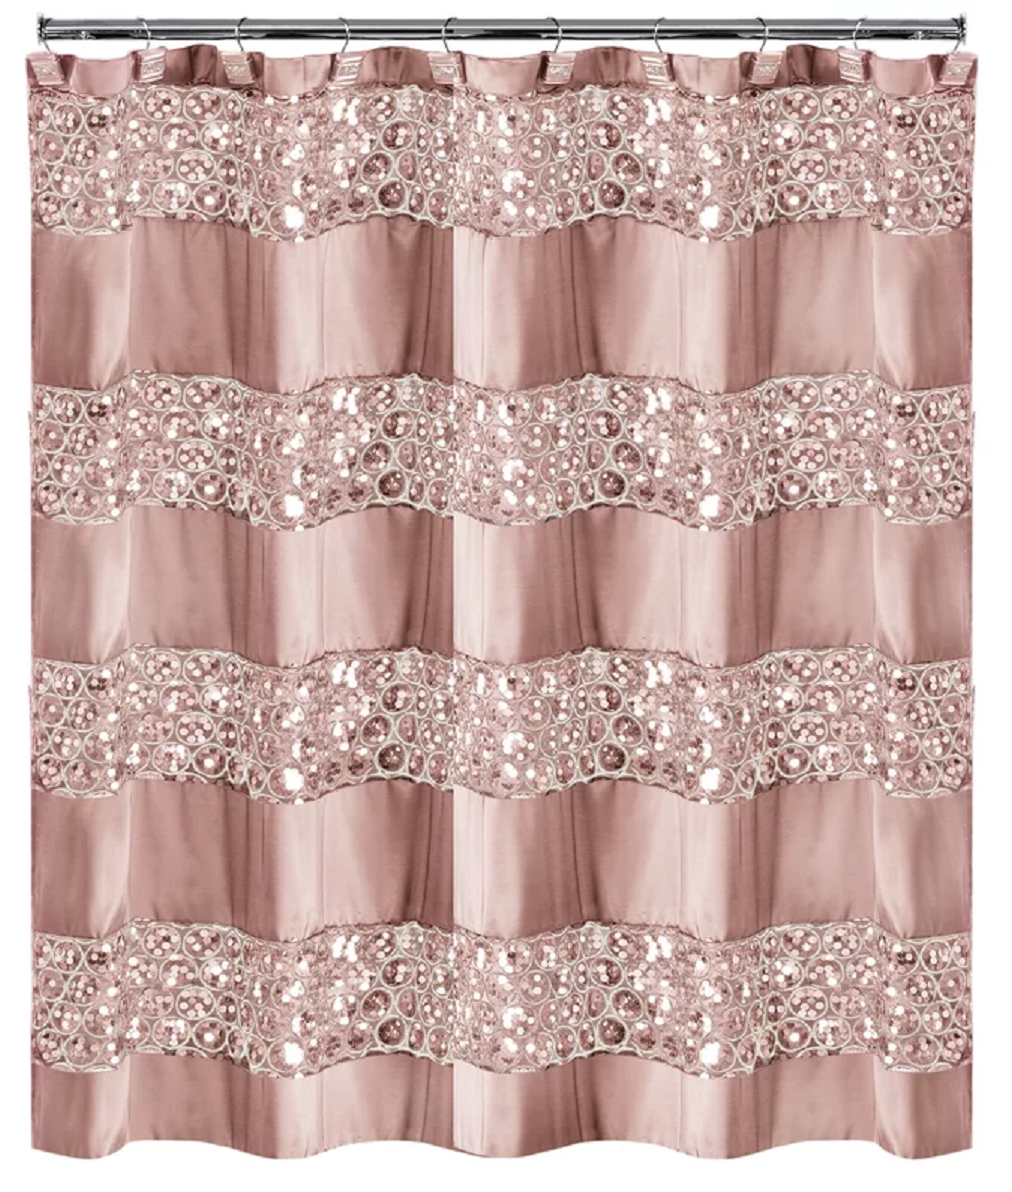 Bling for your bathroom Glittering Sequin Striped Single Shower Curtain